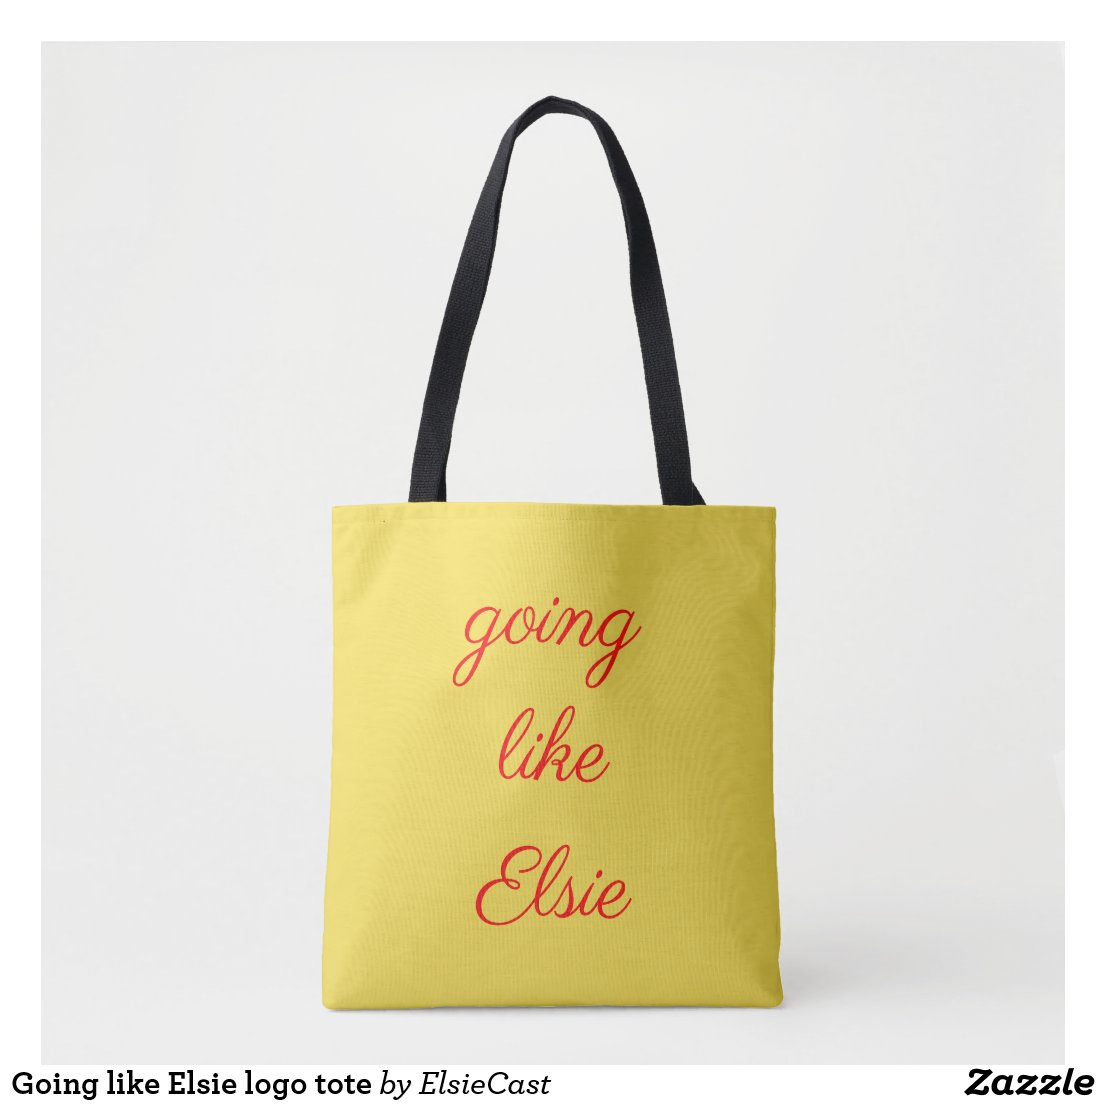 Going like Elsie logo tote